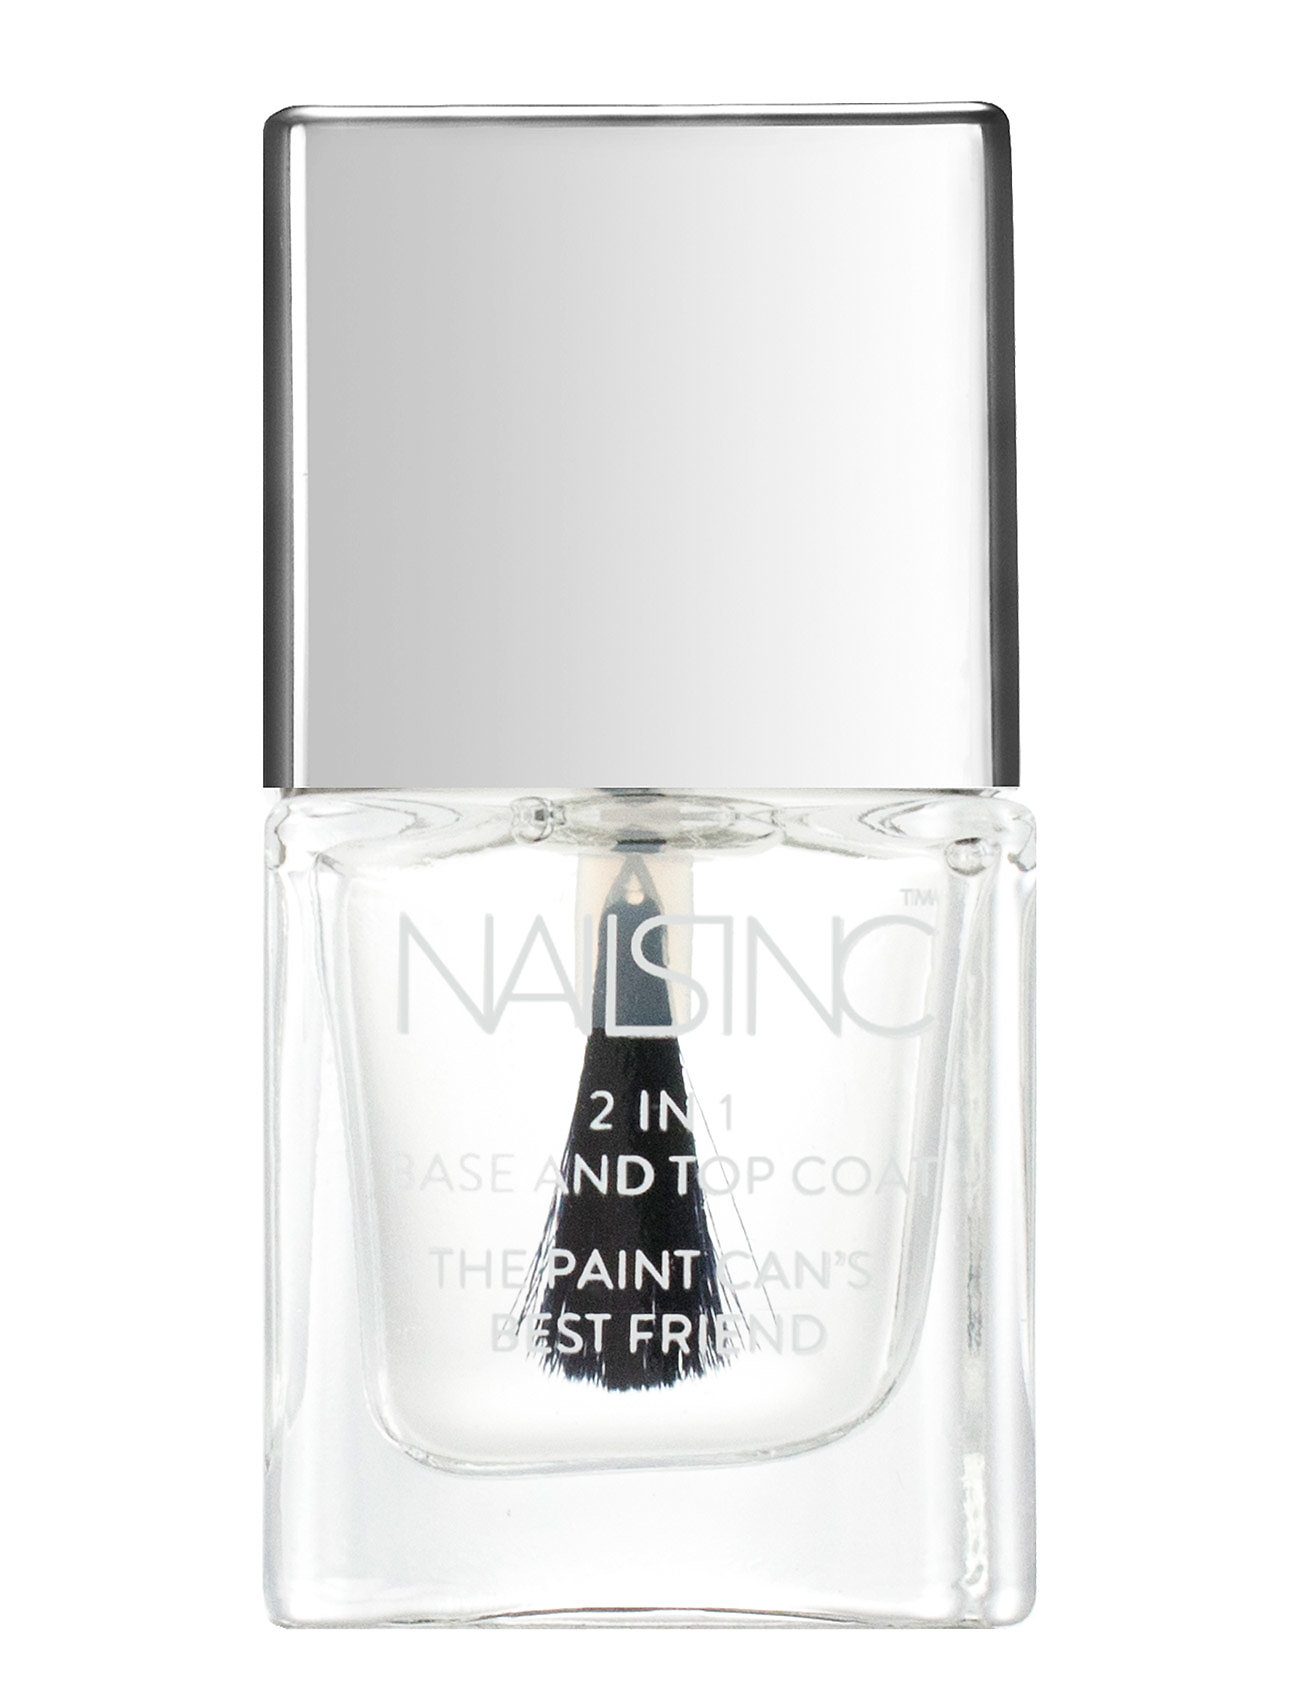 nails inc – 2 in 1 top & base co paint can 5 ml fra boozt.com dk